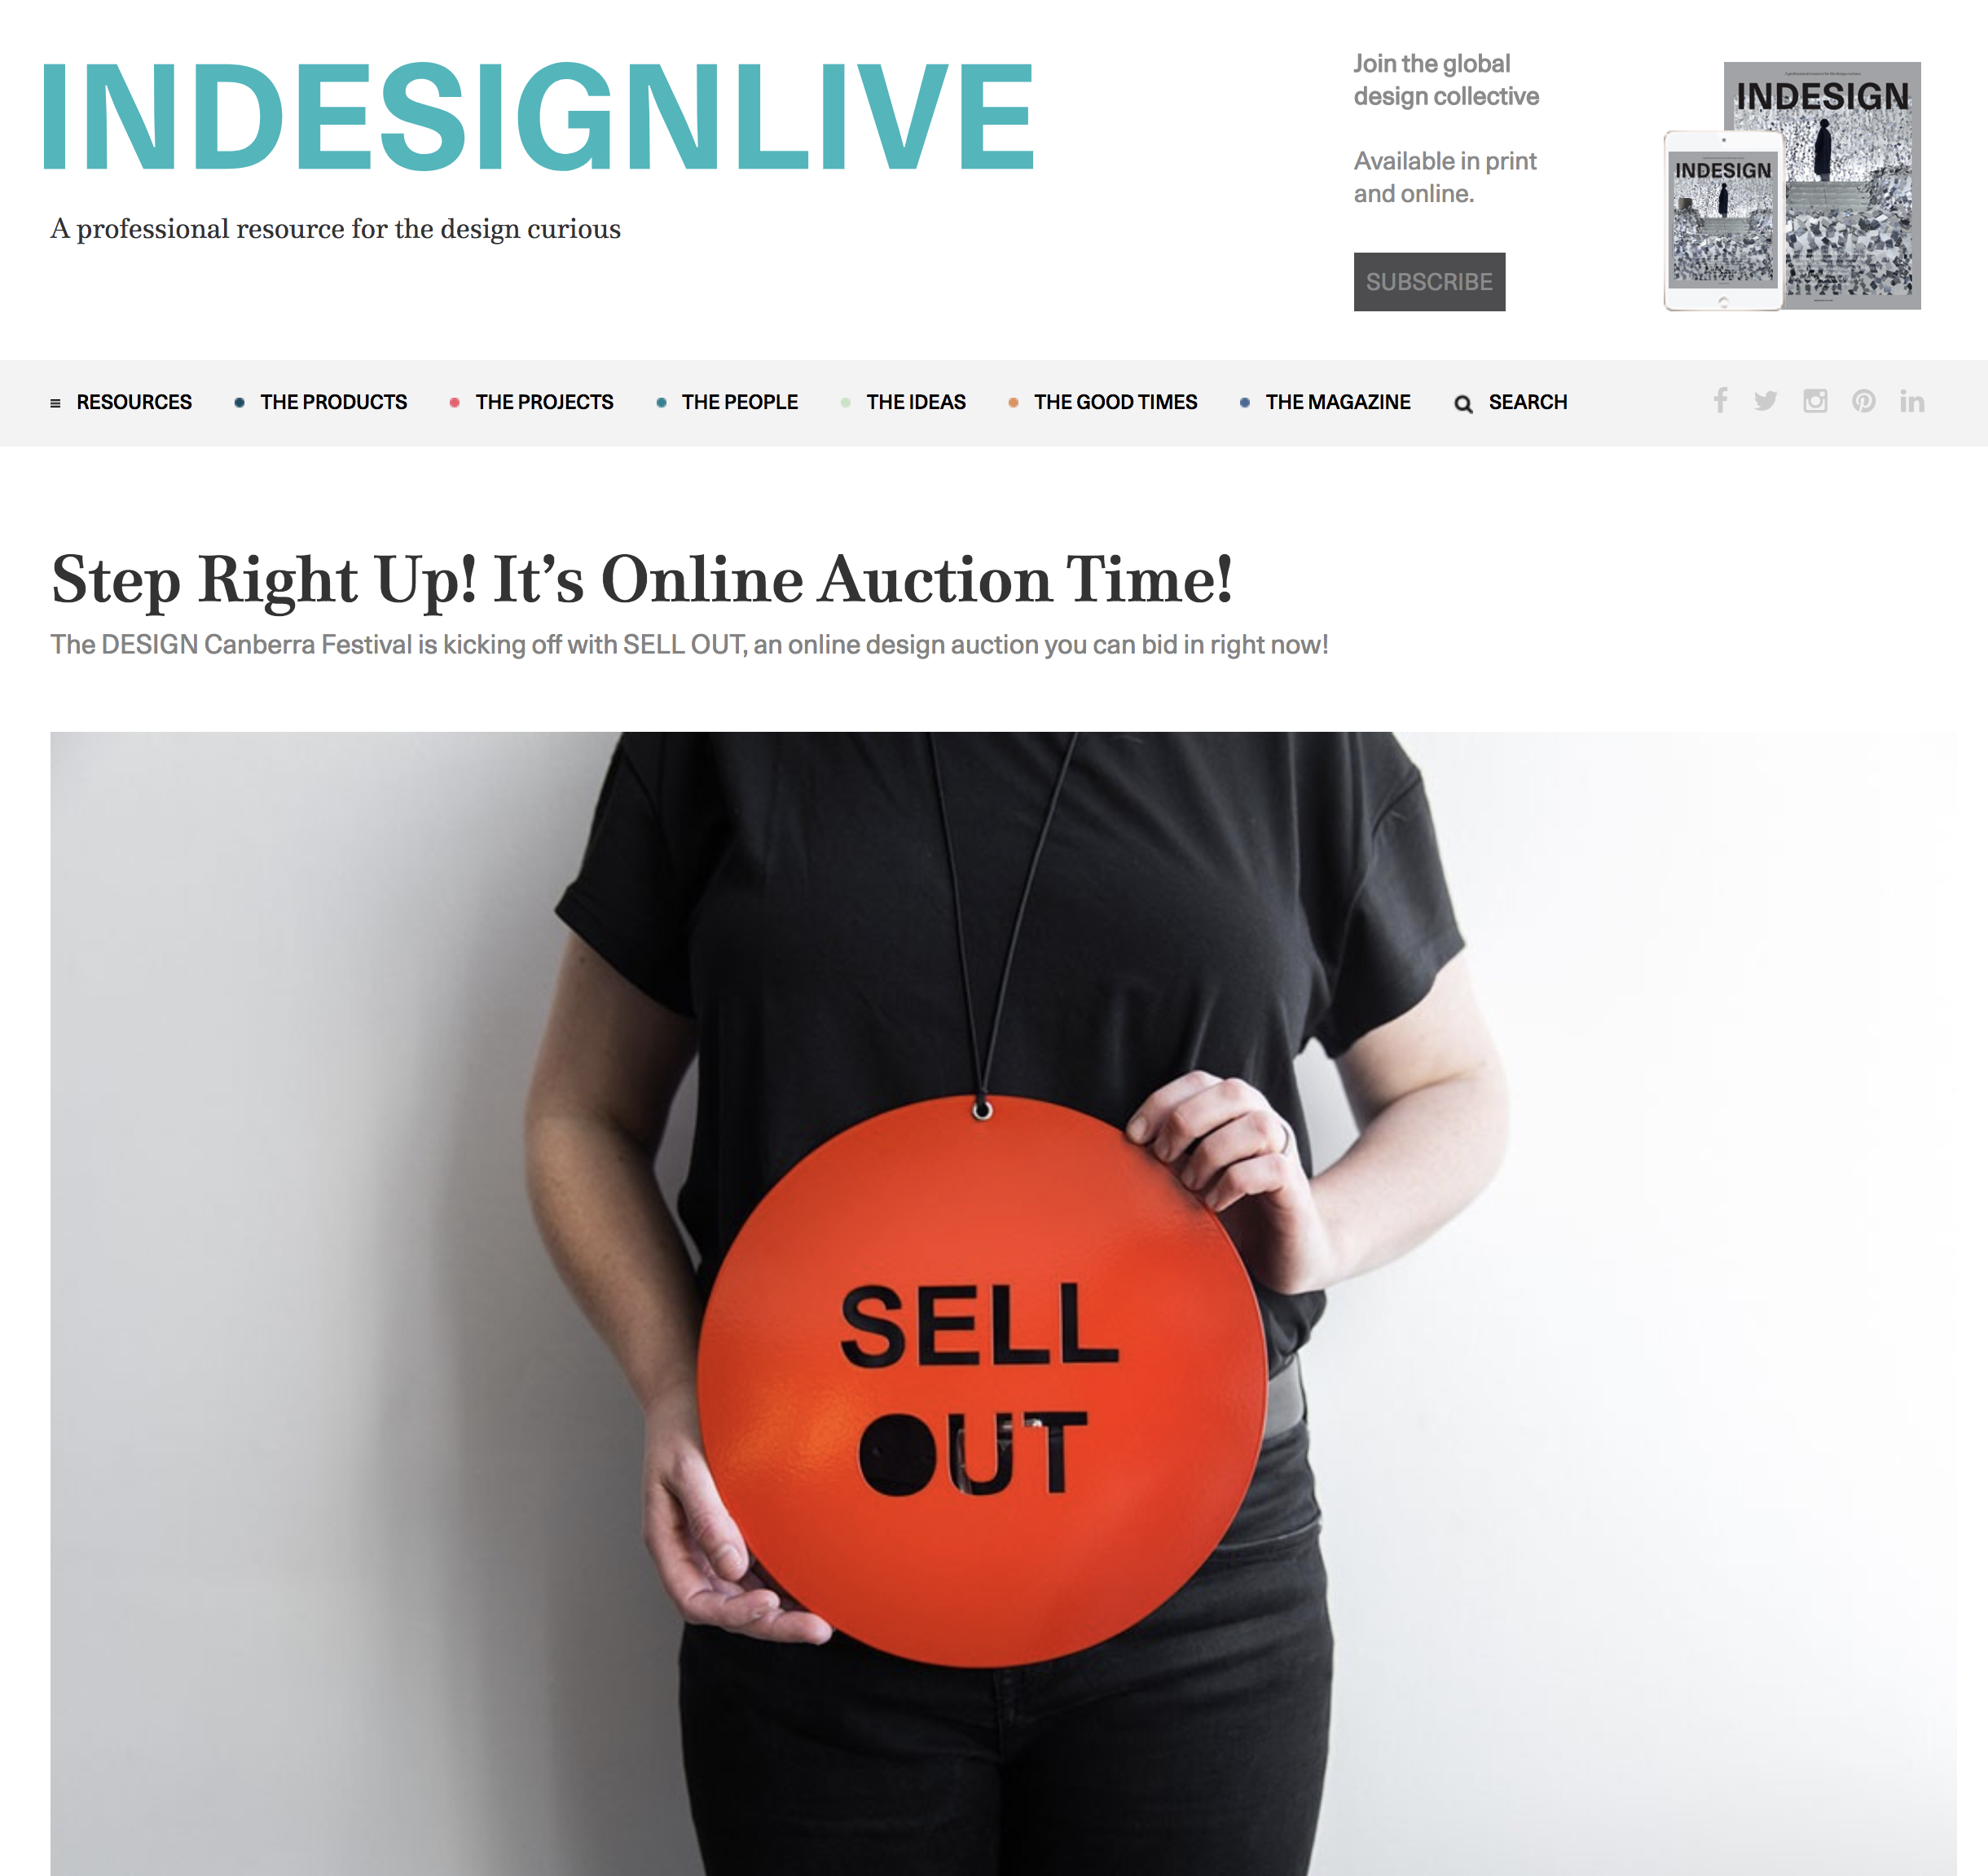 DESIGN CANBERRA-Indesignlive - Auction - 8 November, 20171.png